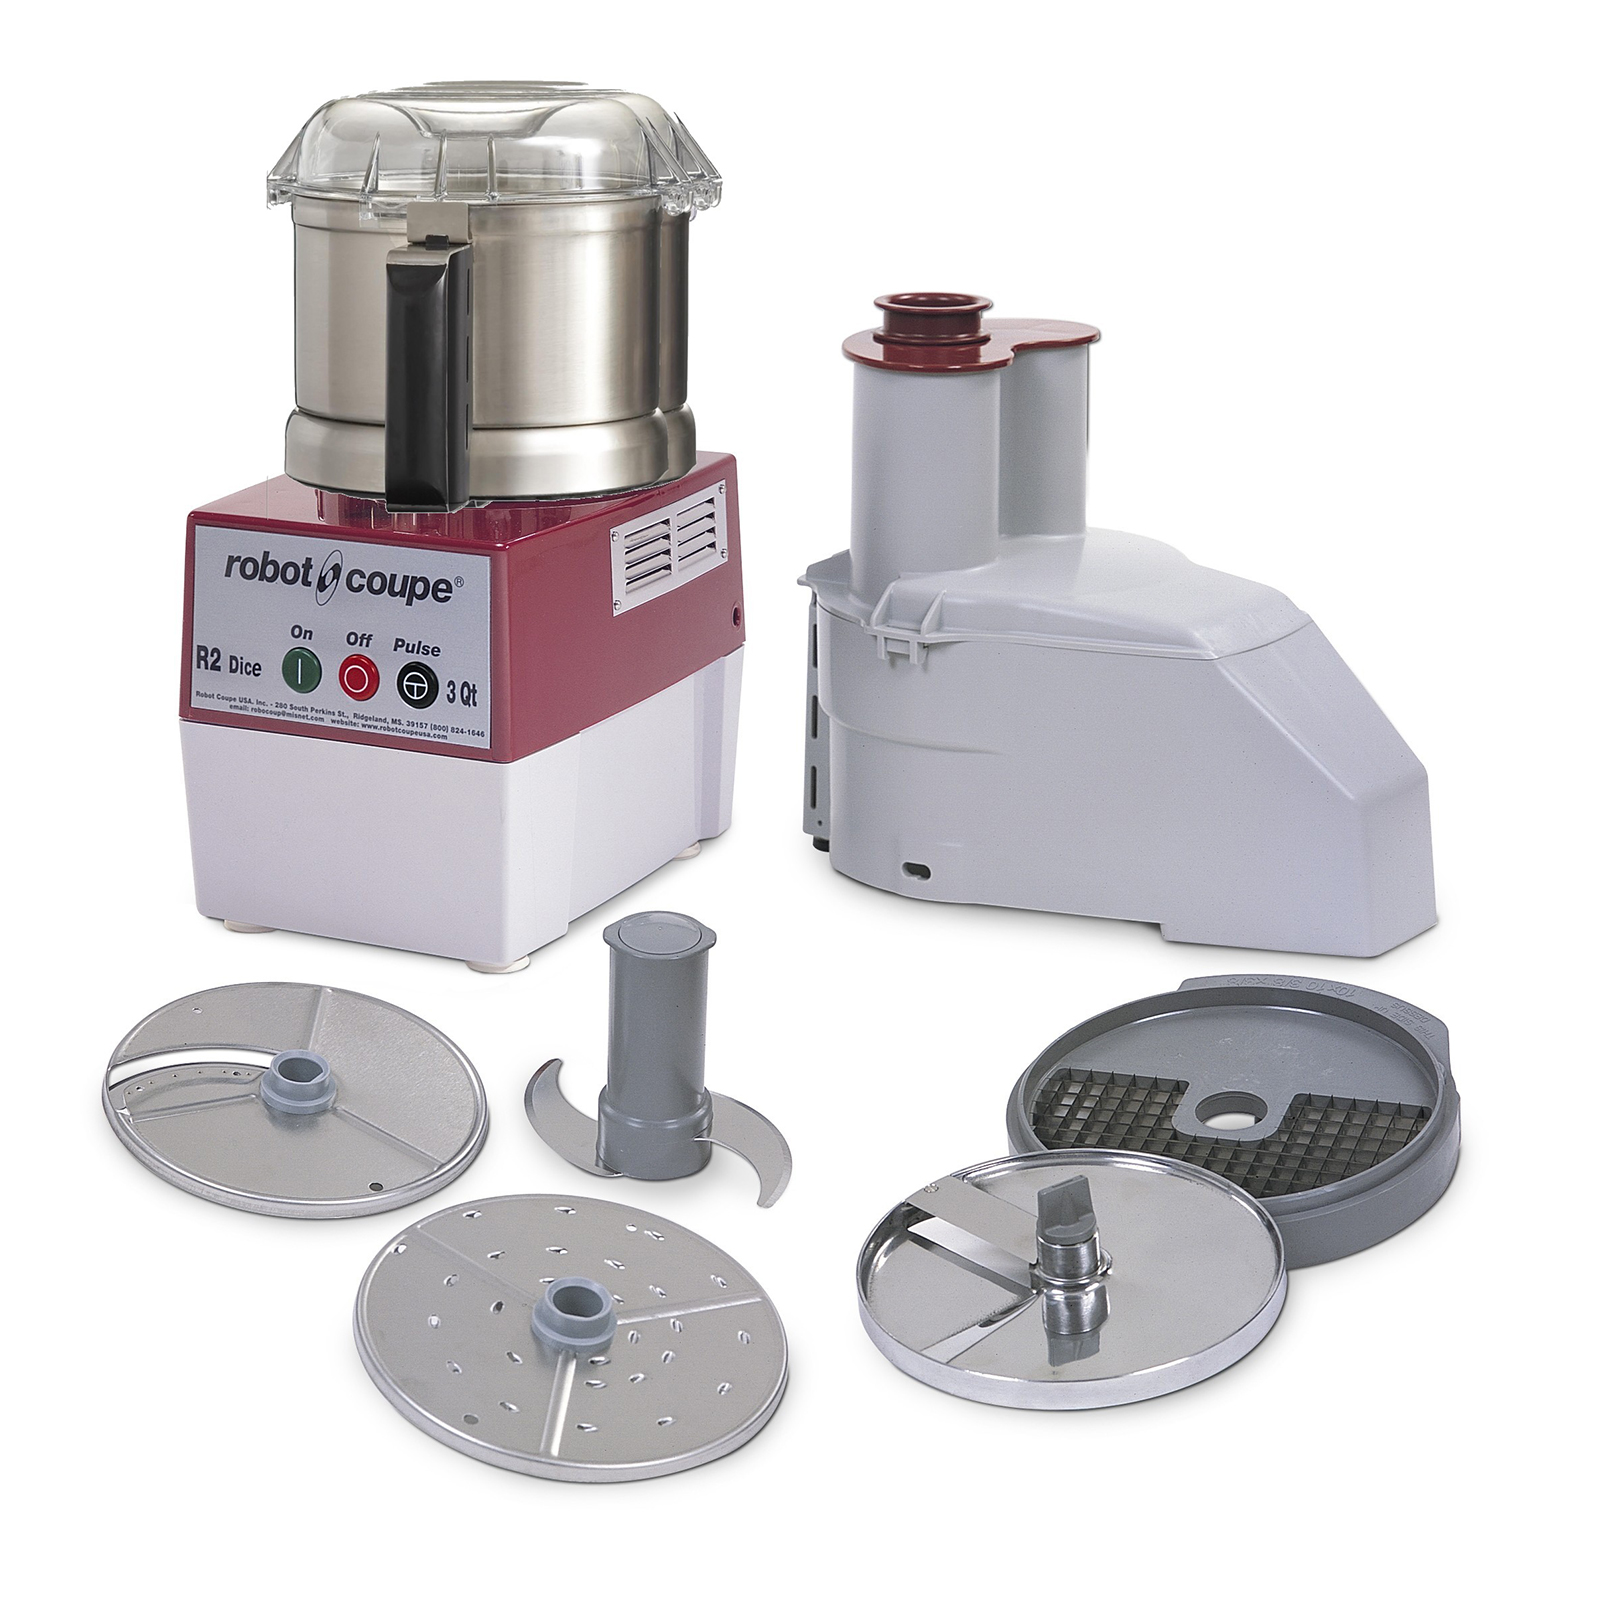 Robot Coupe R2 DICE ULTRA food processor, benchtop / countertop